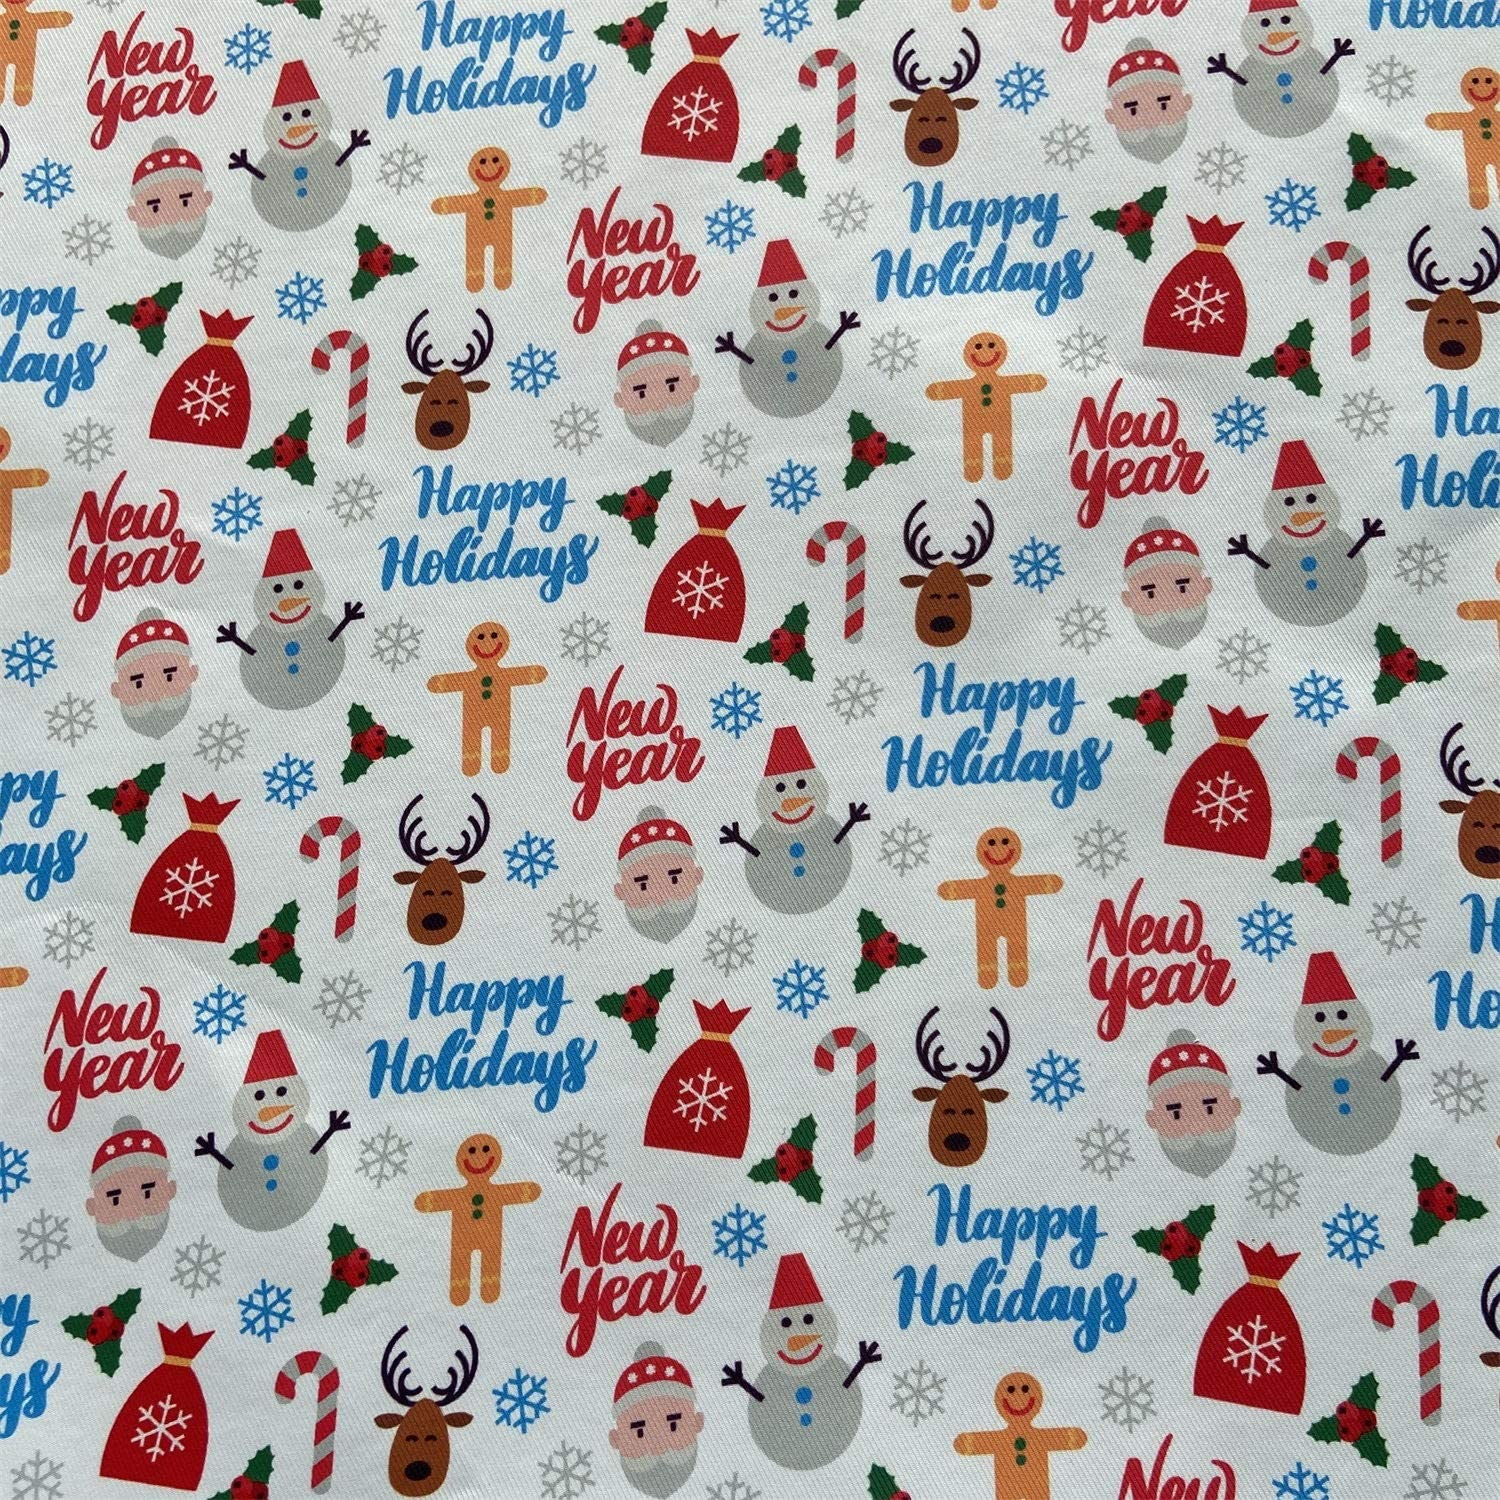 willikiva Printed Waterproof Christmas Fabric by The Yard for Sewing Quilting Fat Quarters Upholstery Indoor Outdoor 36